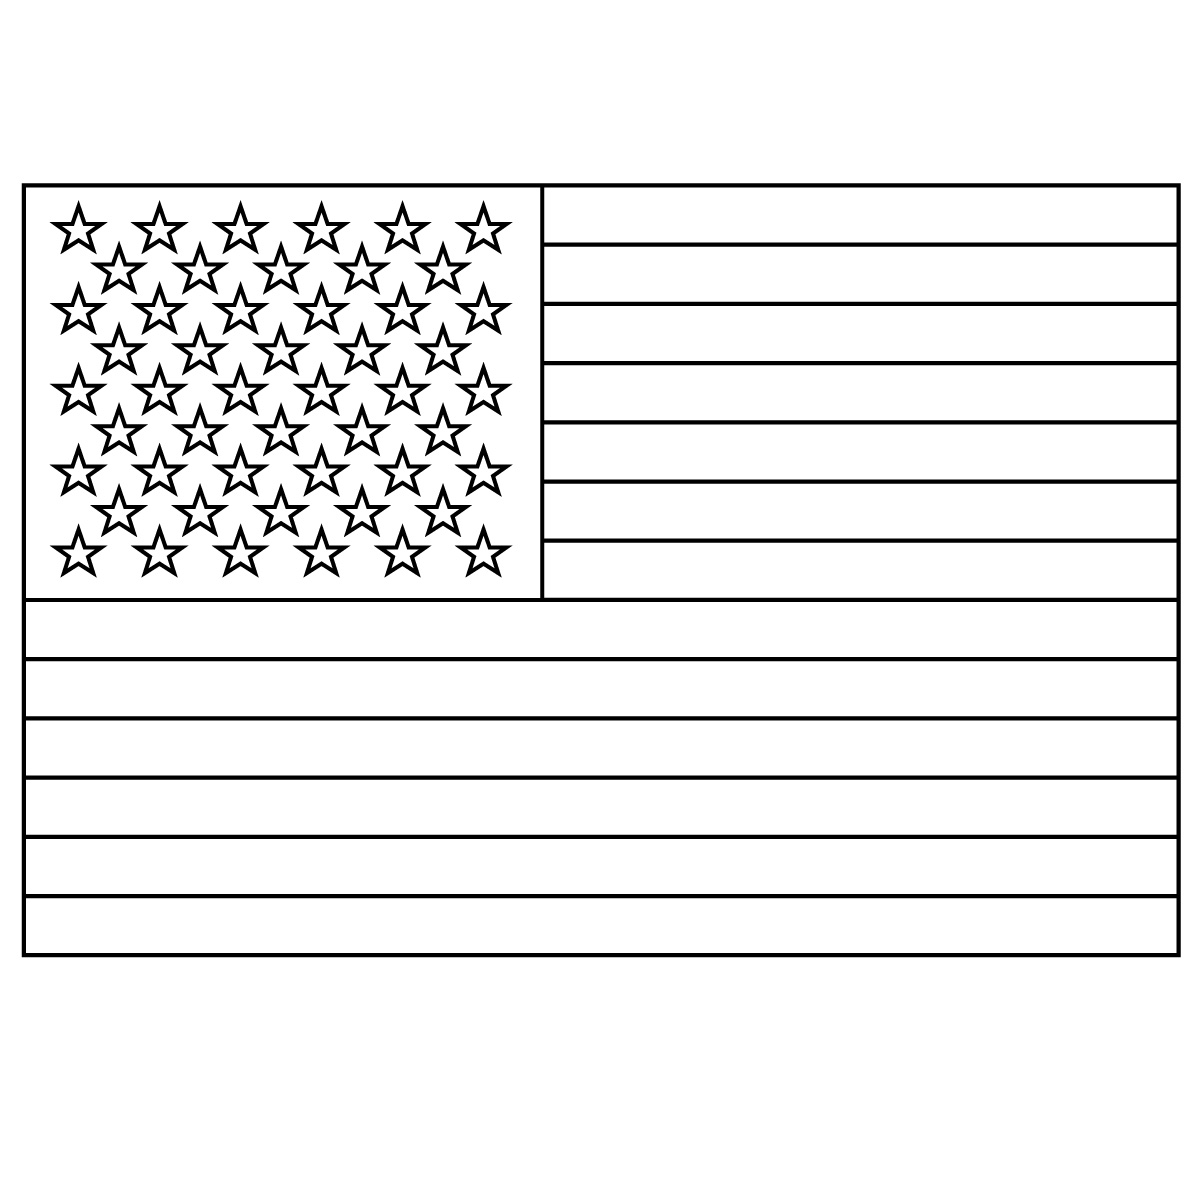 United states flag clipart graphic freeuse stock United States of America Flag Clip Art - U.S.A Flag Clipart graphic freeuse stock